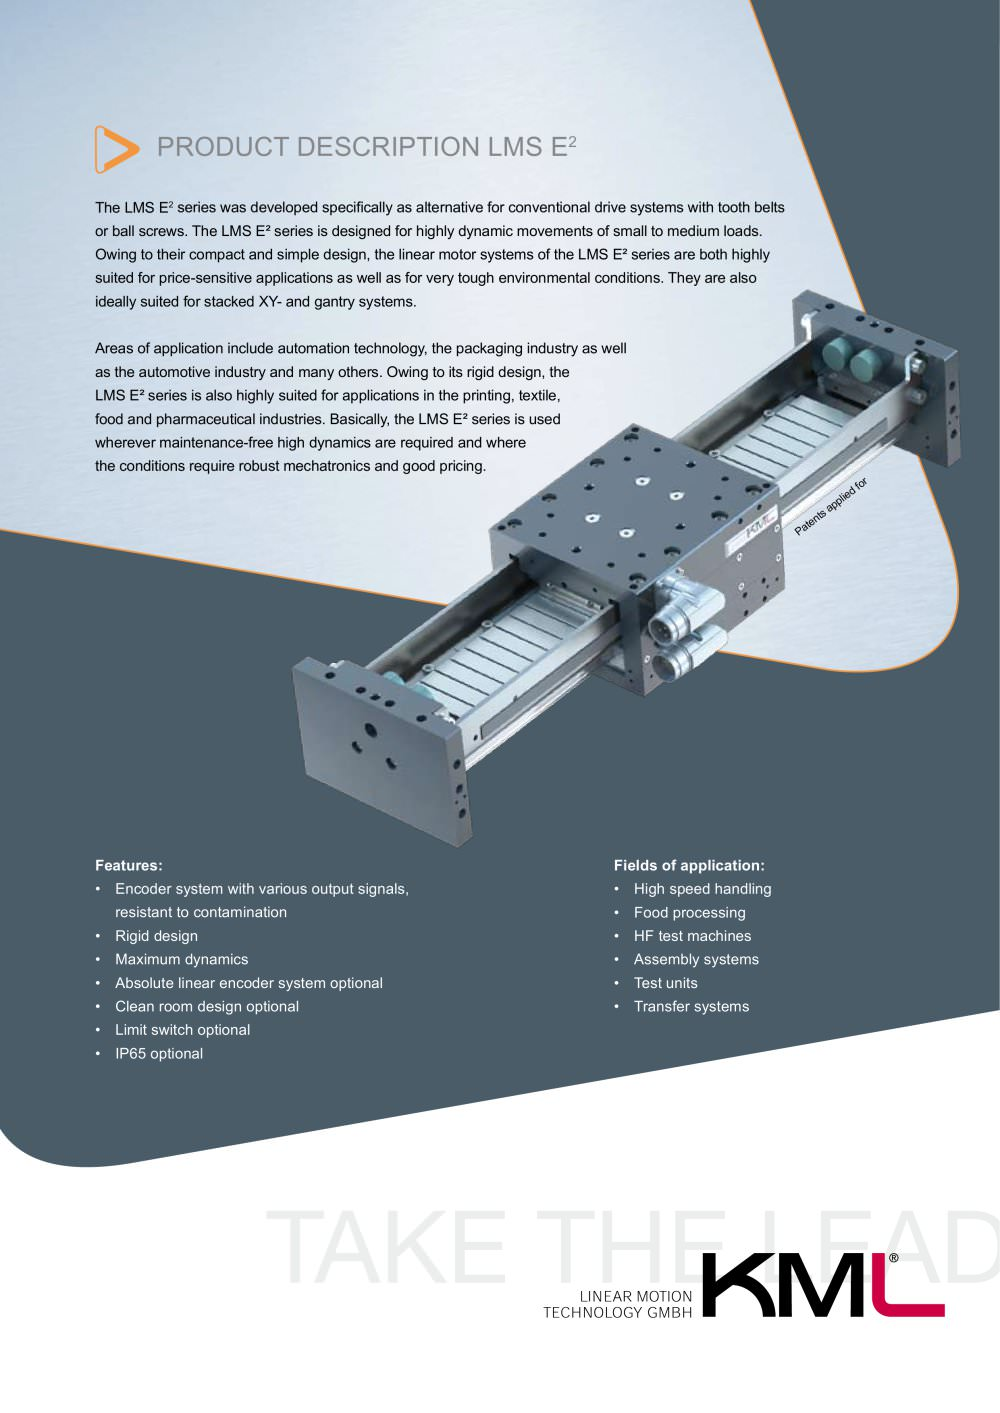 standard linear motor systems series lms e kml linear motion